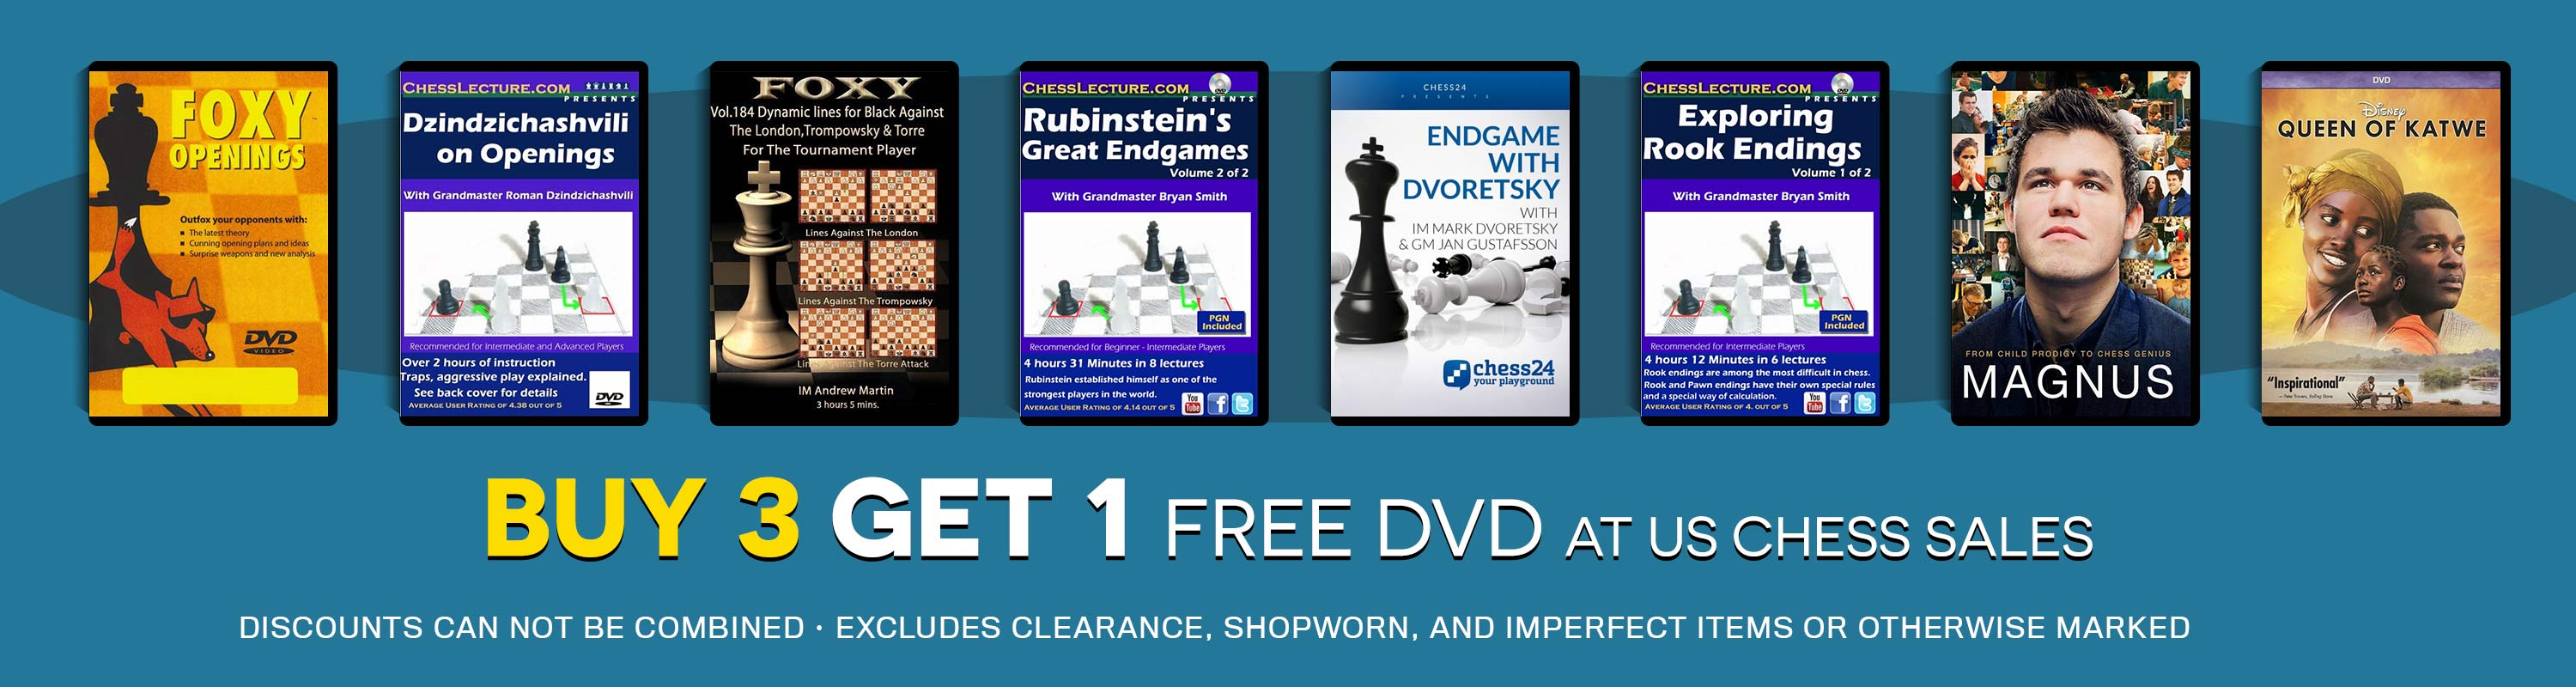 Buy 3 Get 1 Free DVD from US Chess Sales